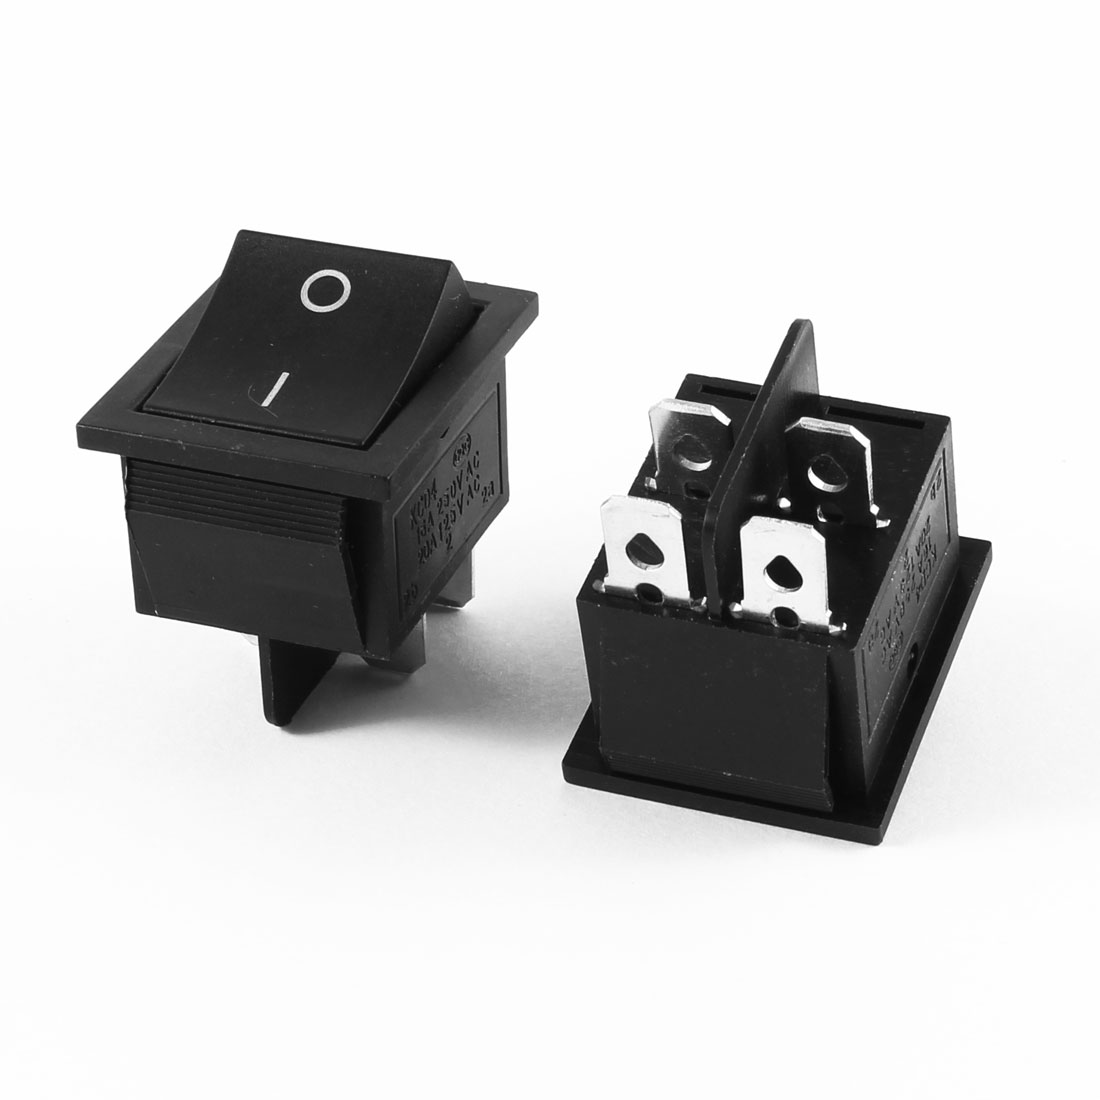 2 Pcs Black Plastic Shell AC 16A/250V 20A/125V 4 Pin DPST On/Off Rocker Switch